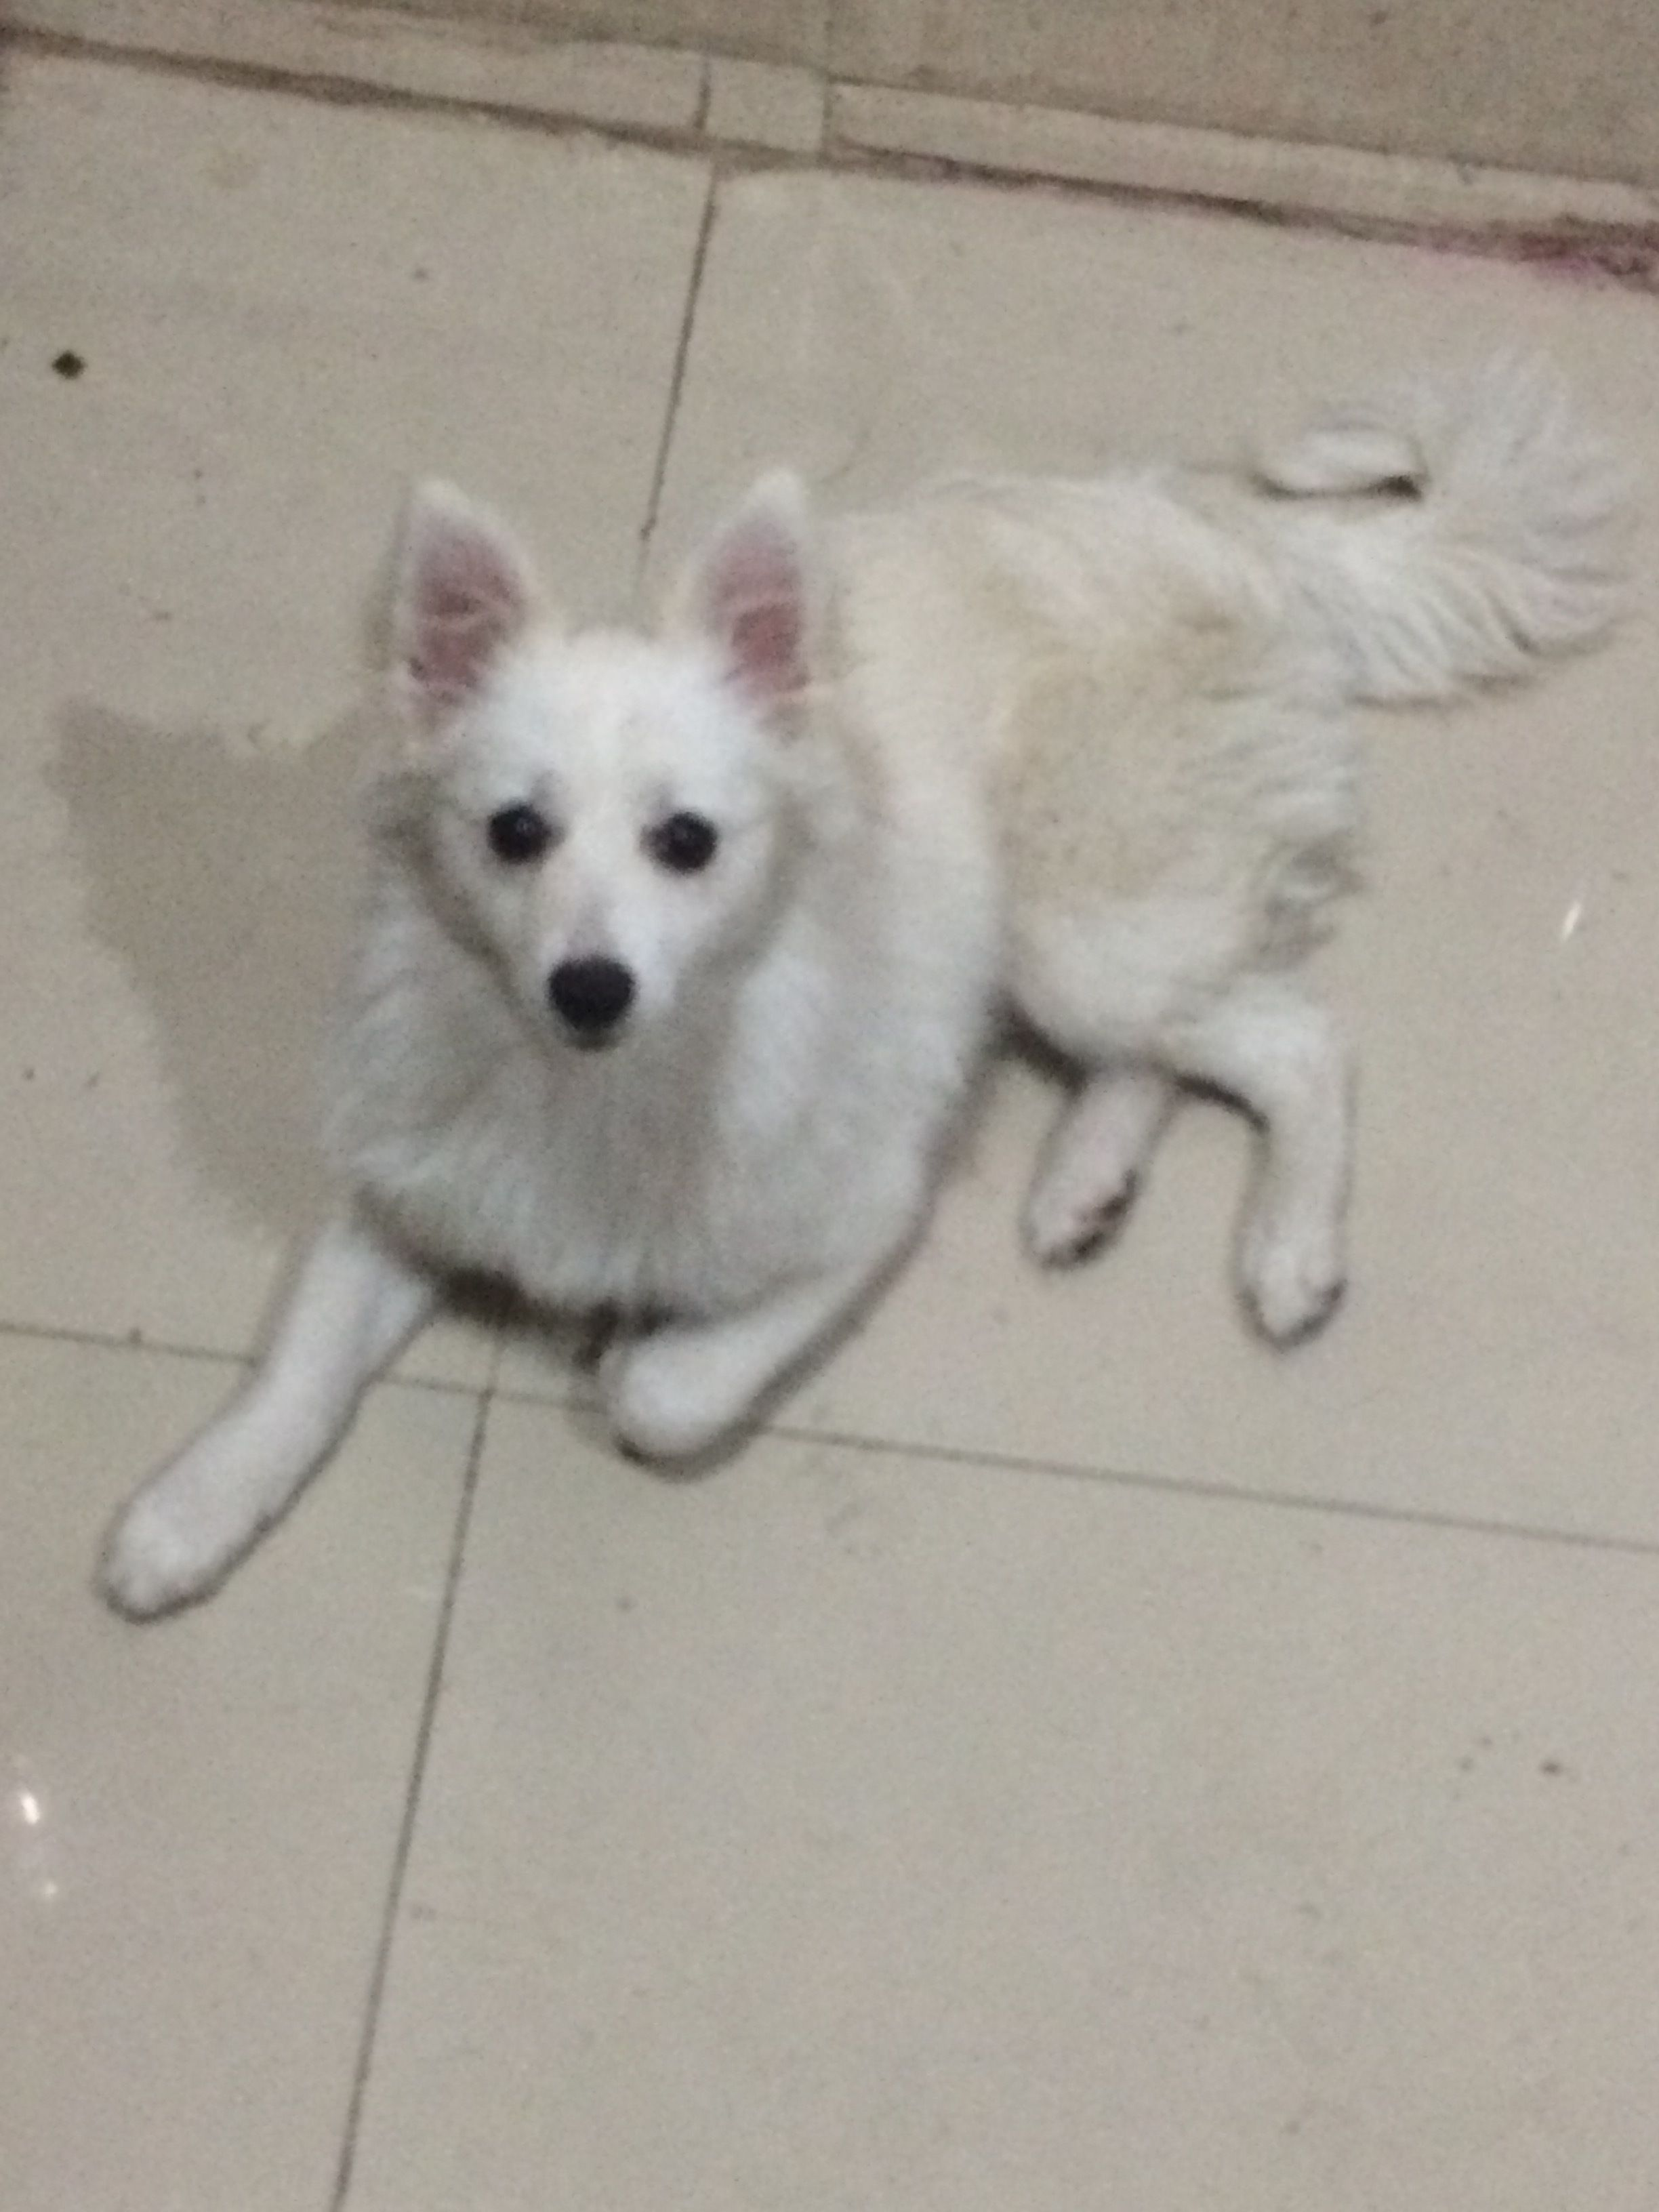 Lost Dog Name Alina Aalu Color White Breed Pomeranian Mixed Breed Like Indian Spitz Red Patta In Neck Light Dog Names Trendy Dog Beds Best Dog Names